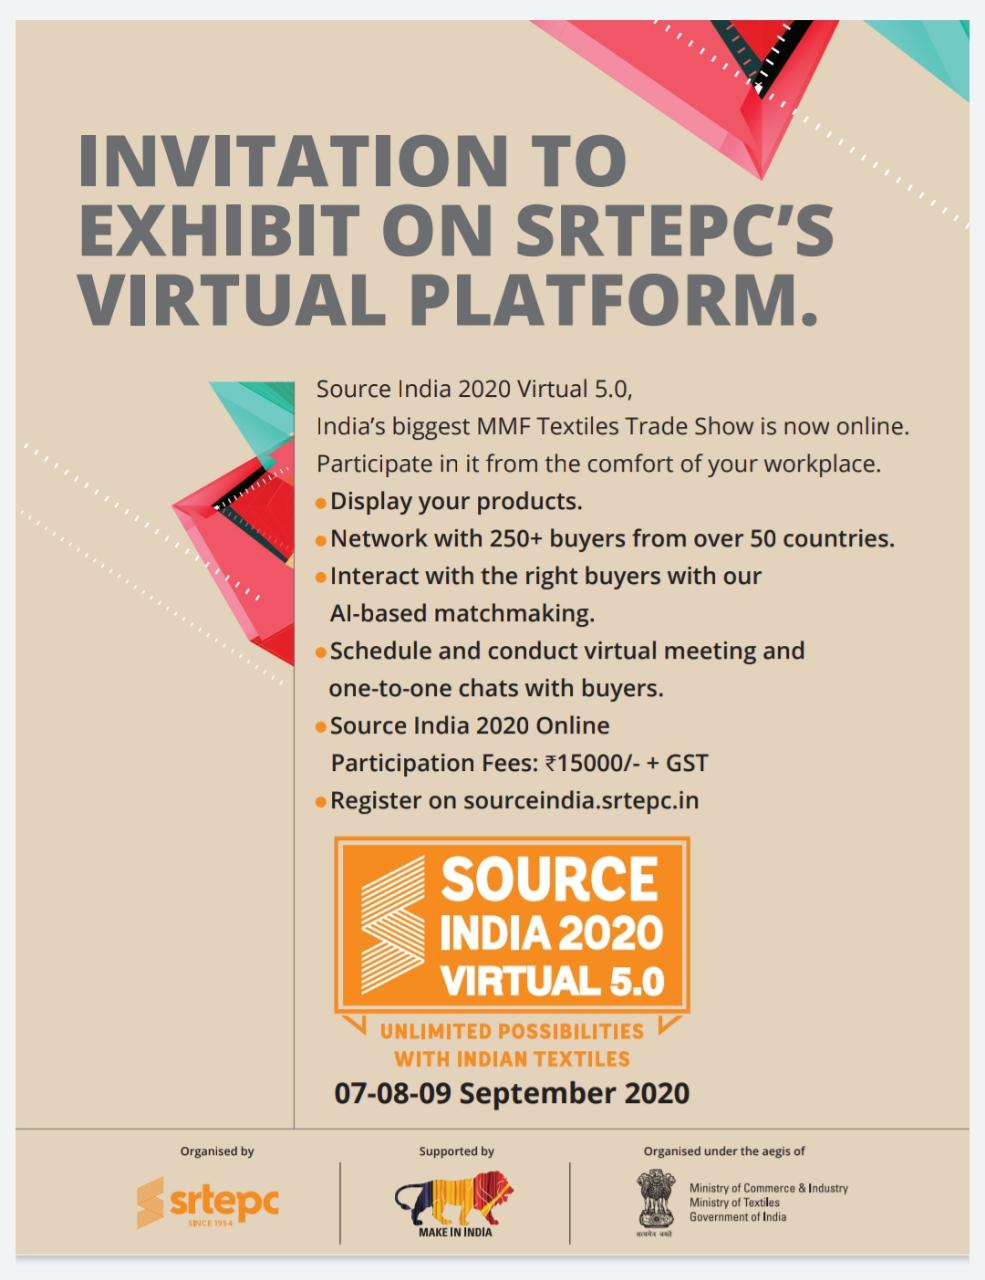 Webinar on Virtual Exhibition on 28th Aug 2020 (Friday) at 11:30 am